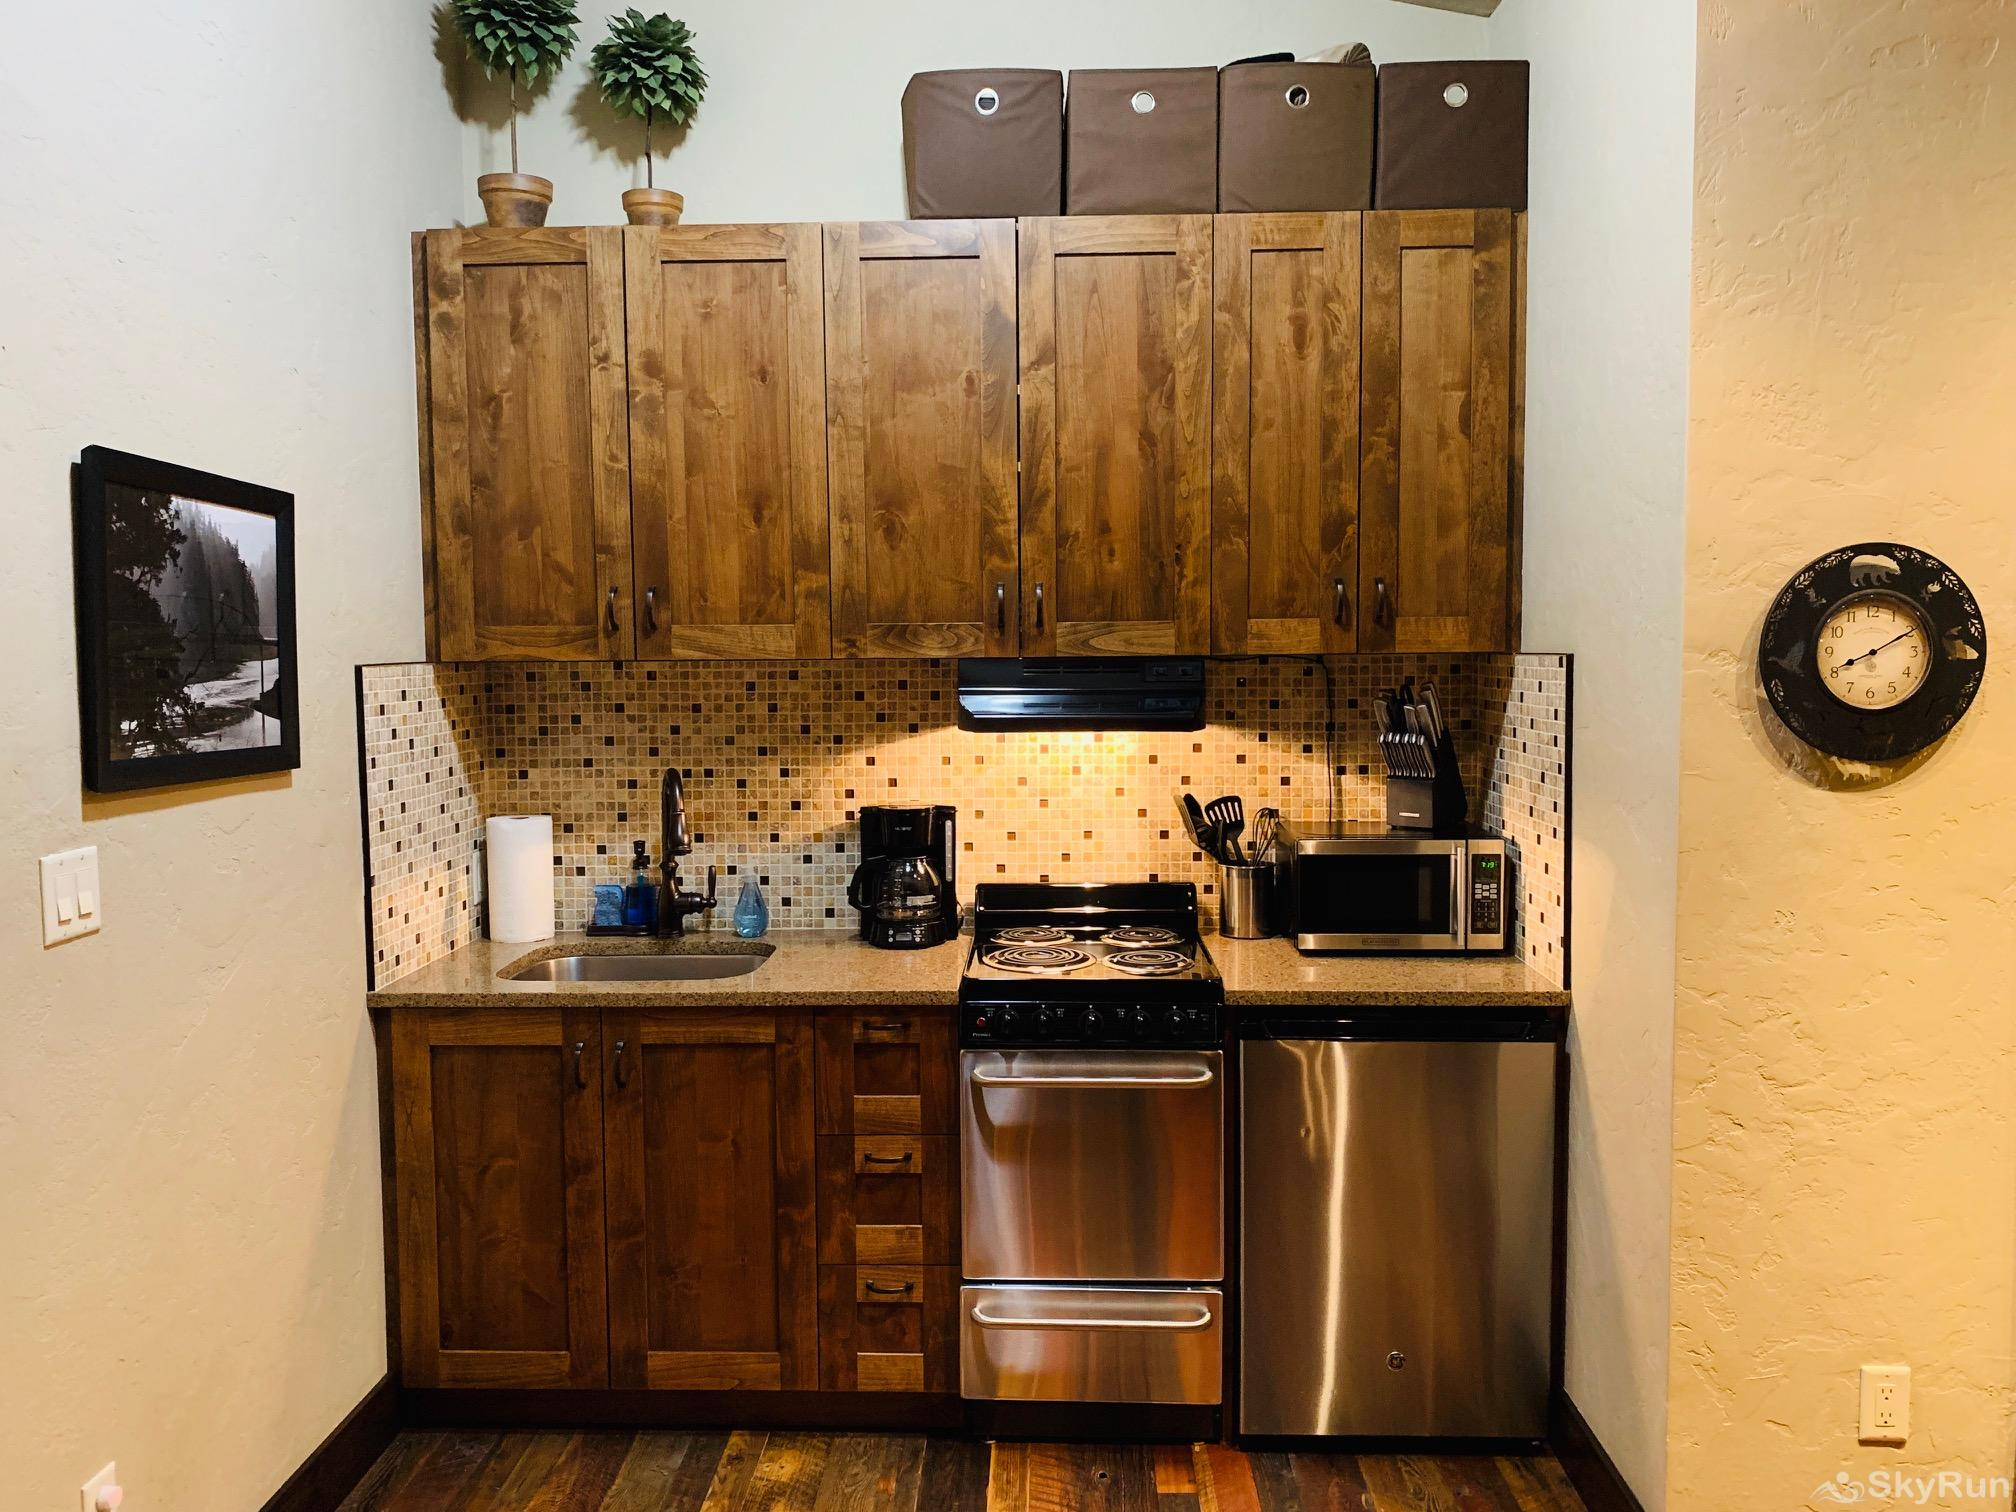 Wrangler Loft Kitchenette for those that want to make their own meals.